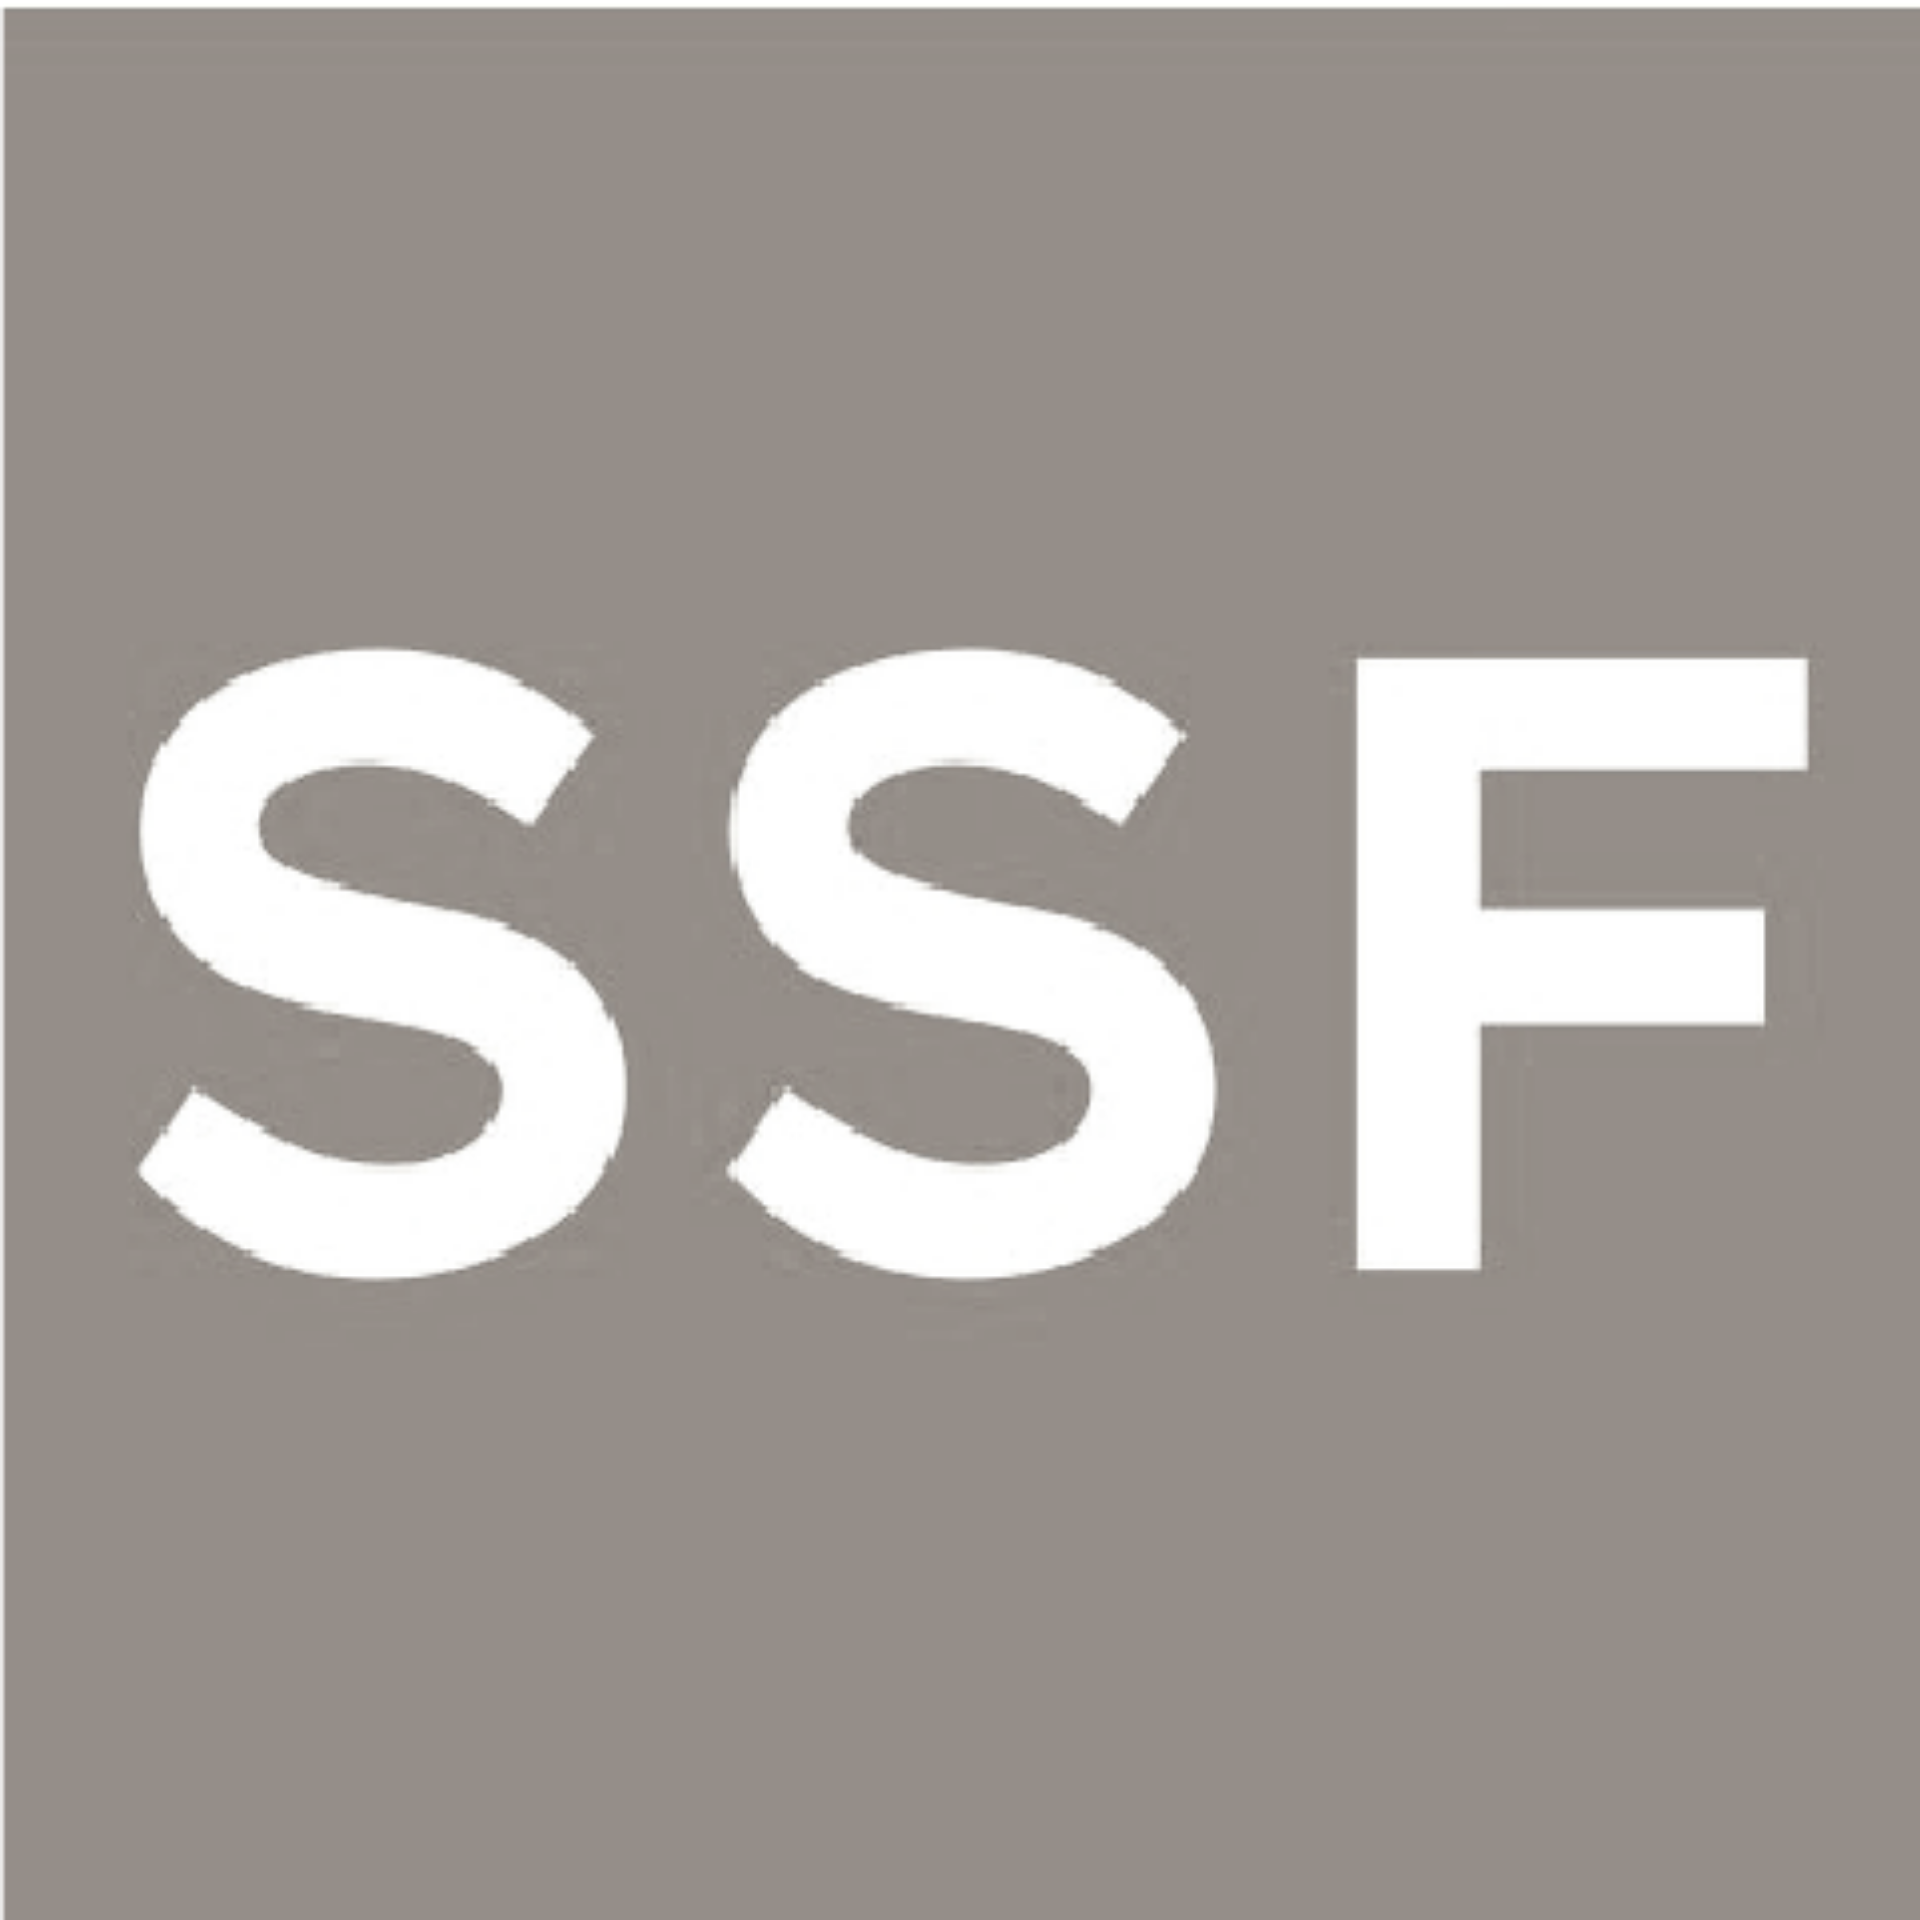 SSF malaysia - great lifestyle made affordable